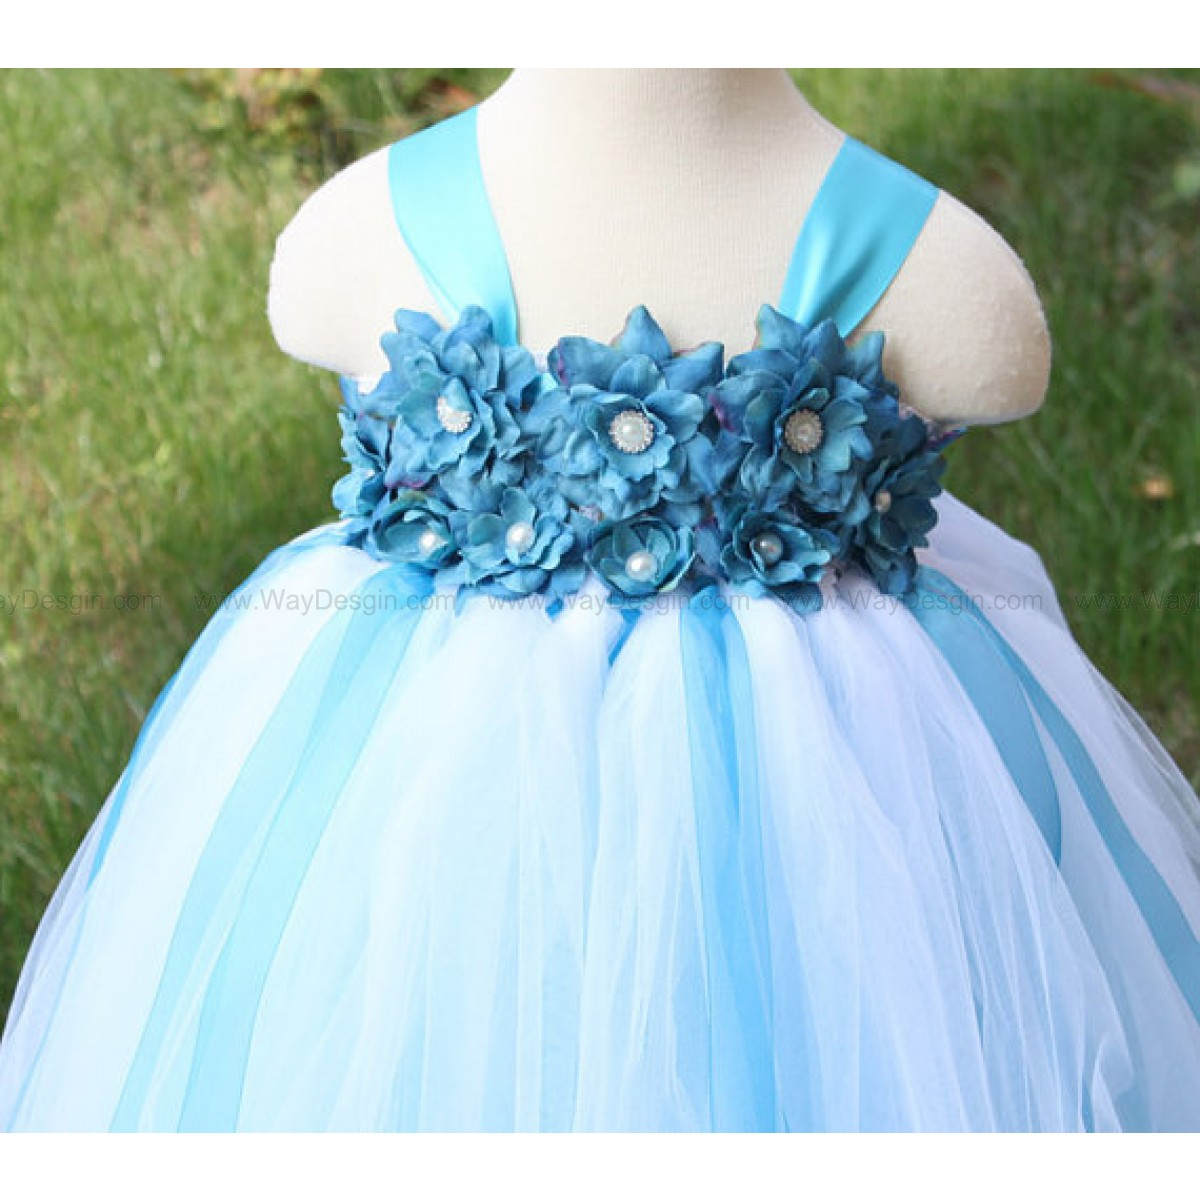 Flower Girl Dress With Headband Turquoise White Tutu Dress Baby